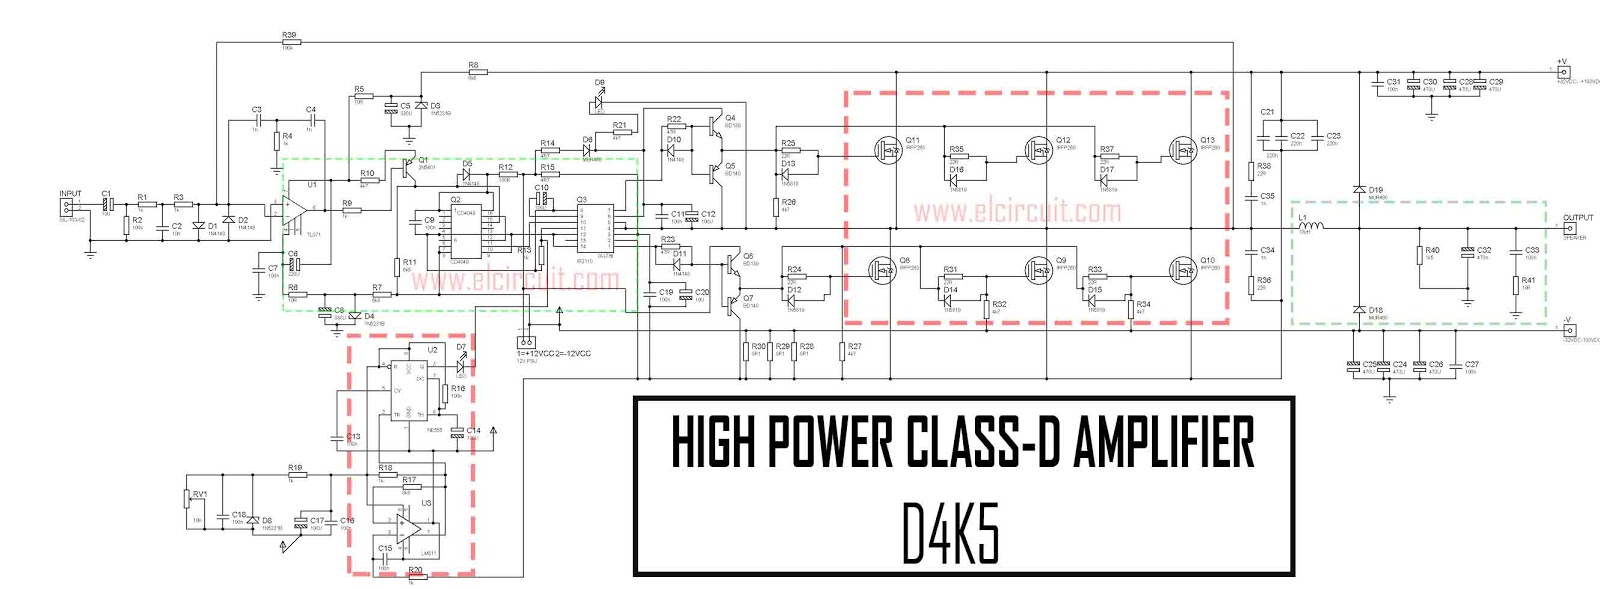 power amplifier class d d4k5 4500w circuit diagram [ 1600 x 589 Pixel ]